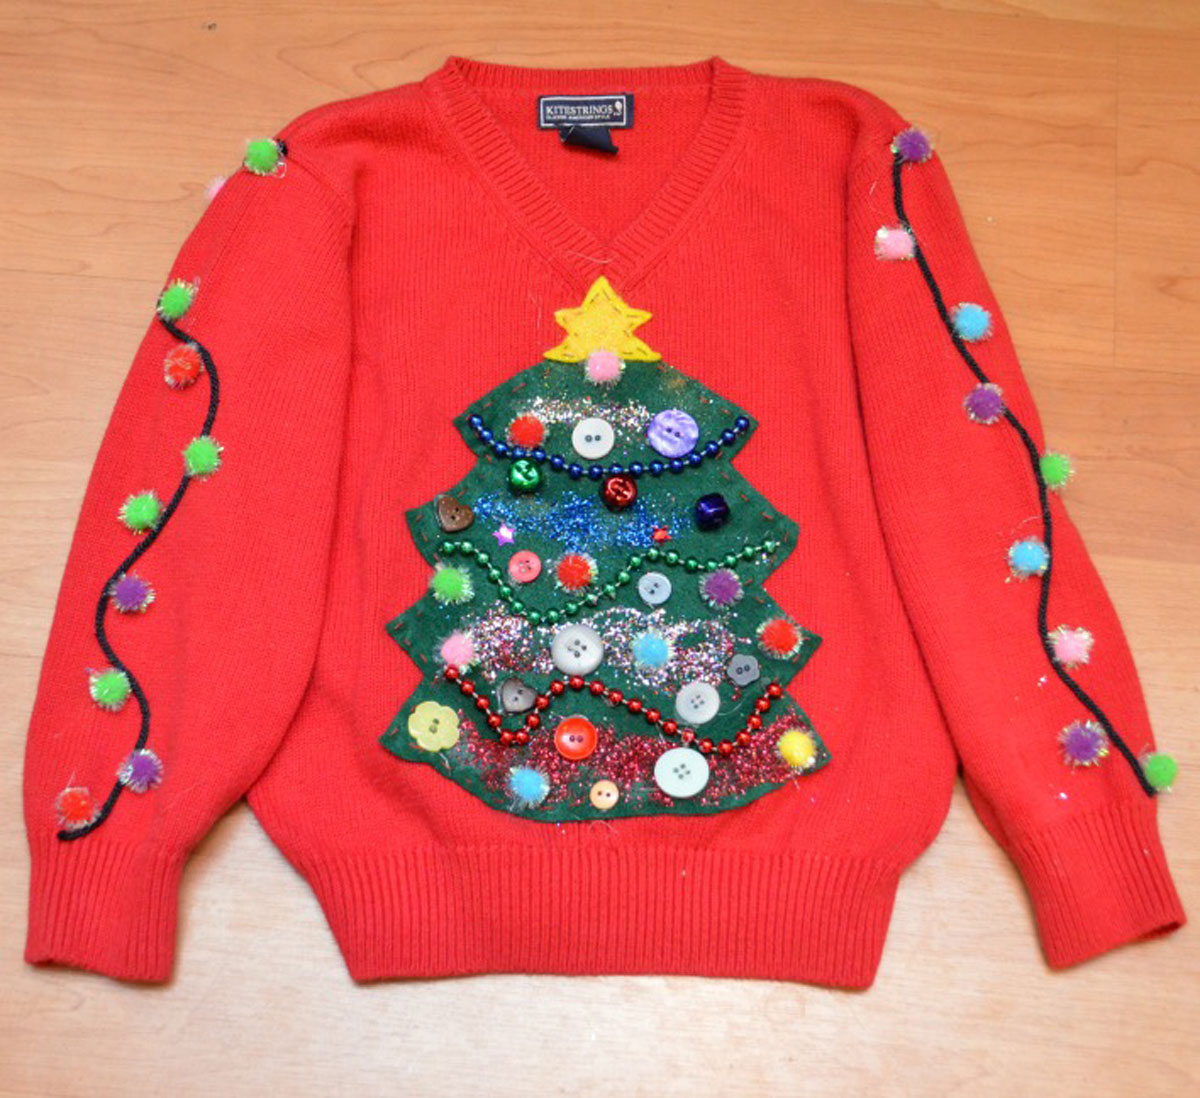 red xmas sweater with ornaments as buttons